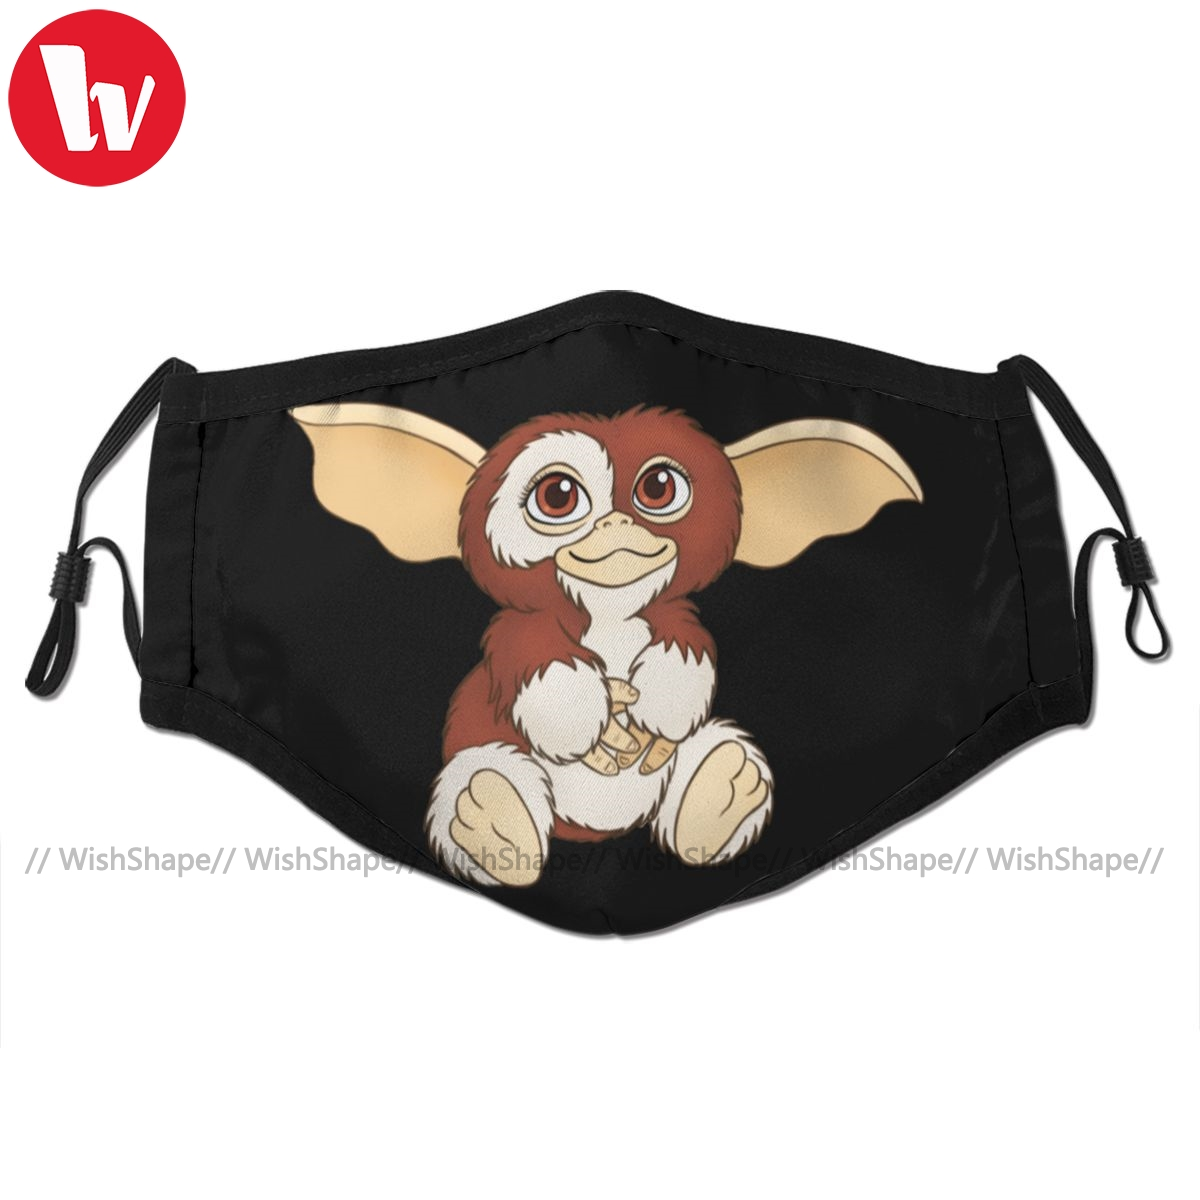 Mogwai Gremlins Mouth Face Mask Gizmo Facial Mask Fashion Cool With 2 Filters For Adult